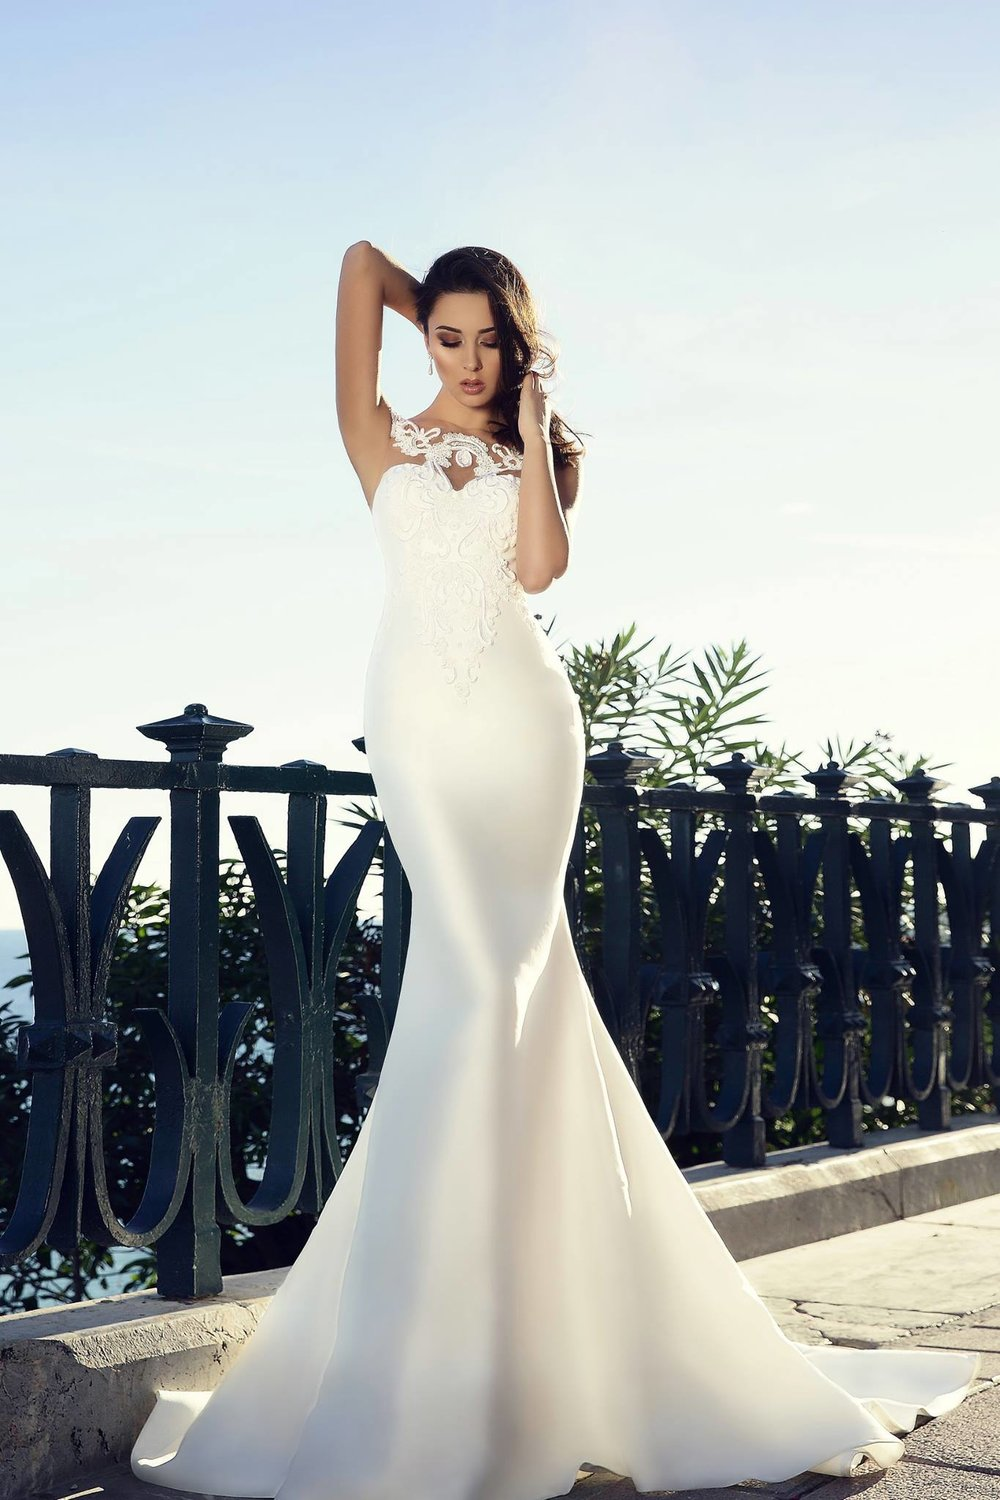 VANESSA wedding dress by TINA VALERDI